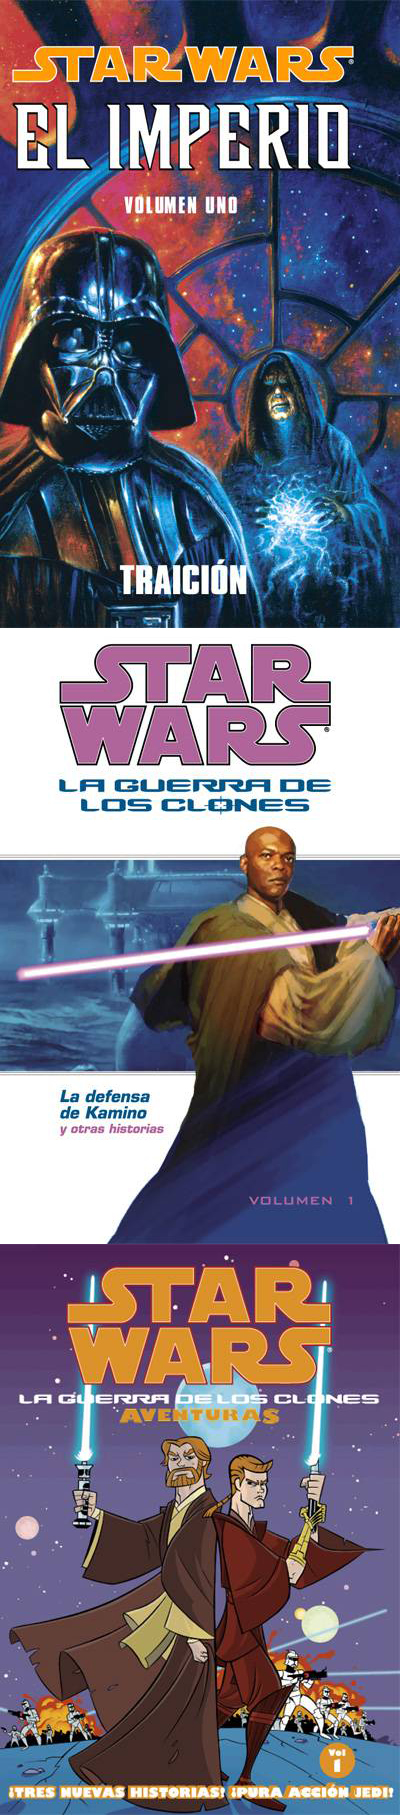 spanishstarwars